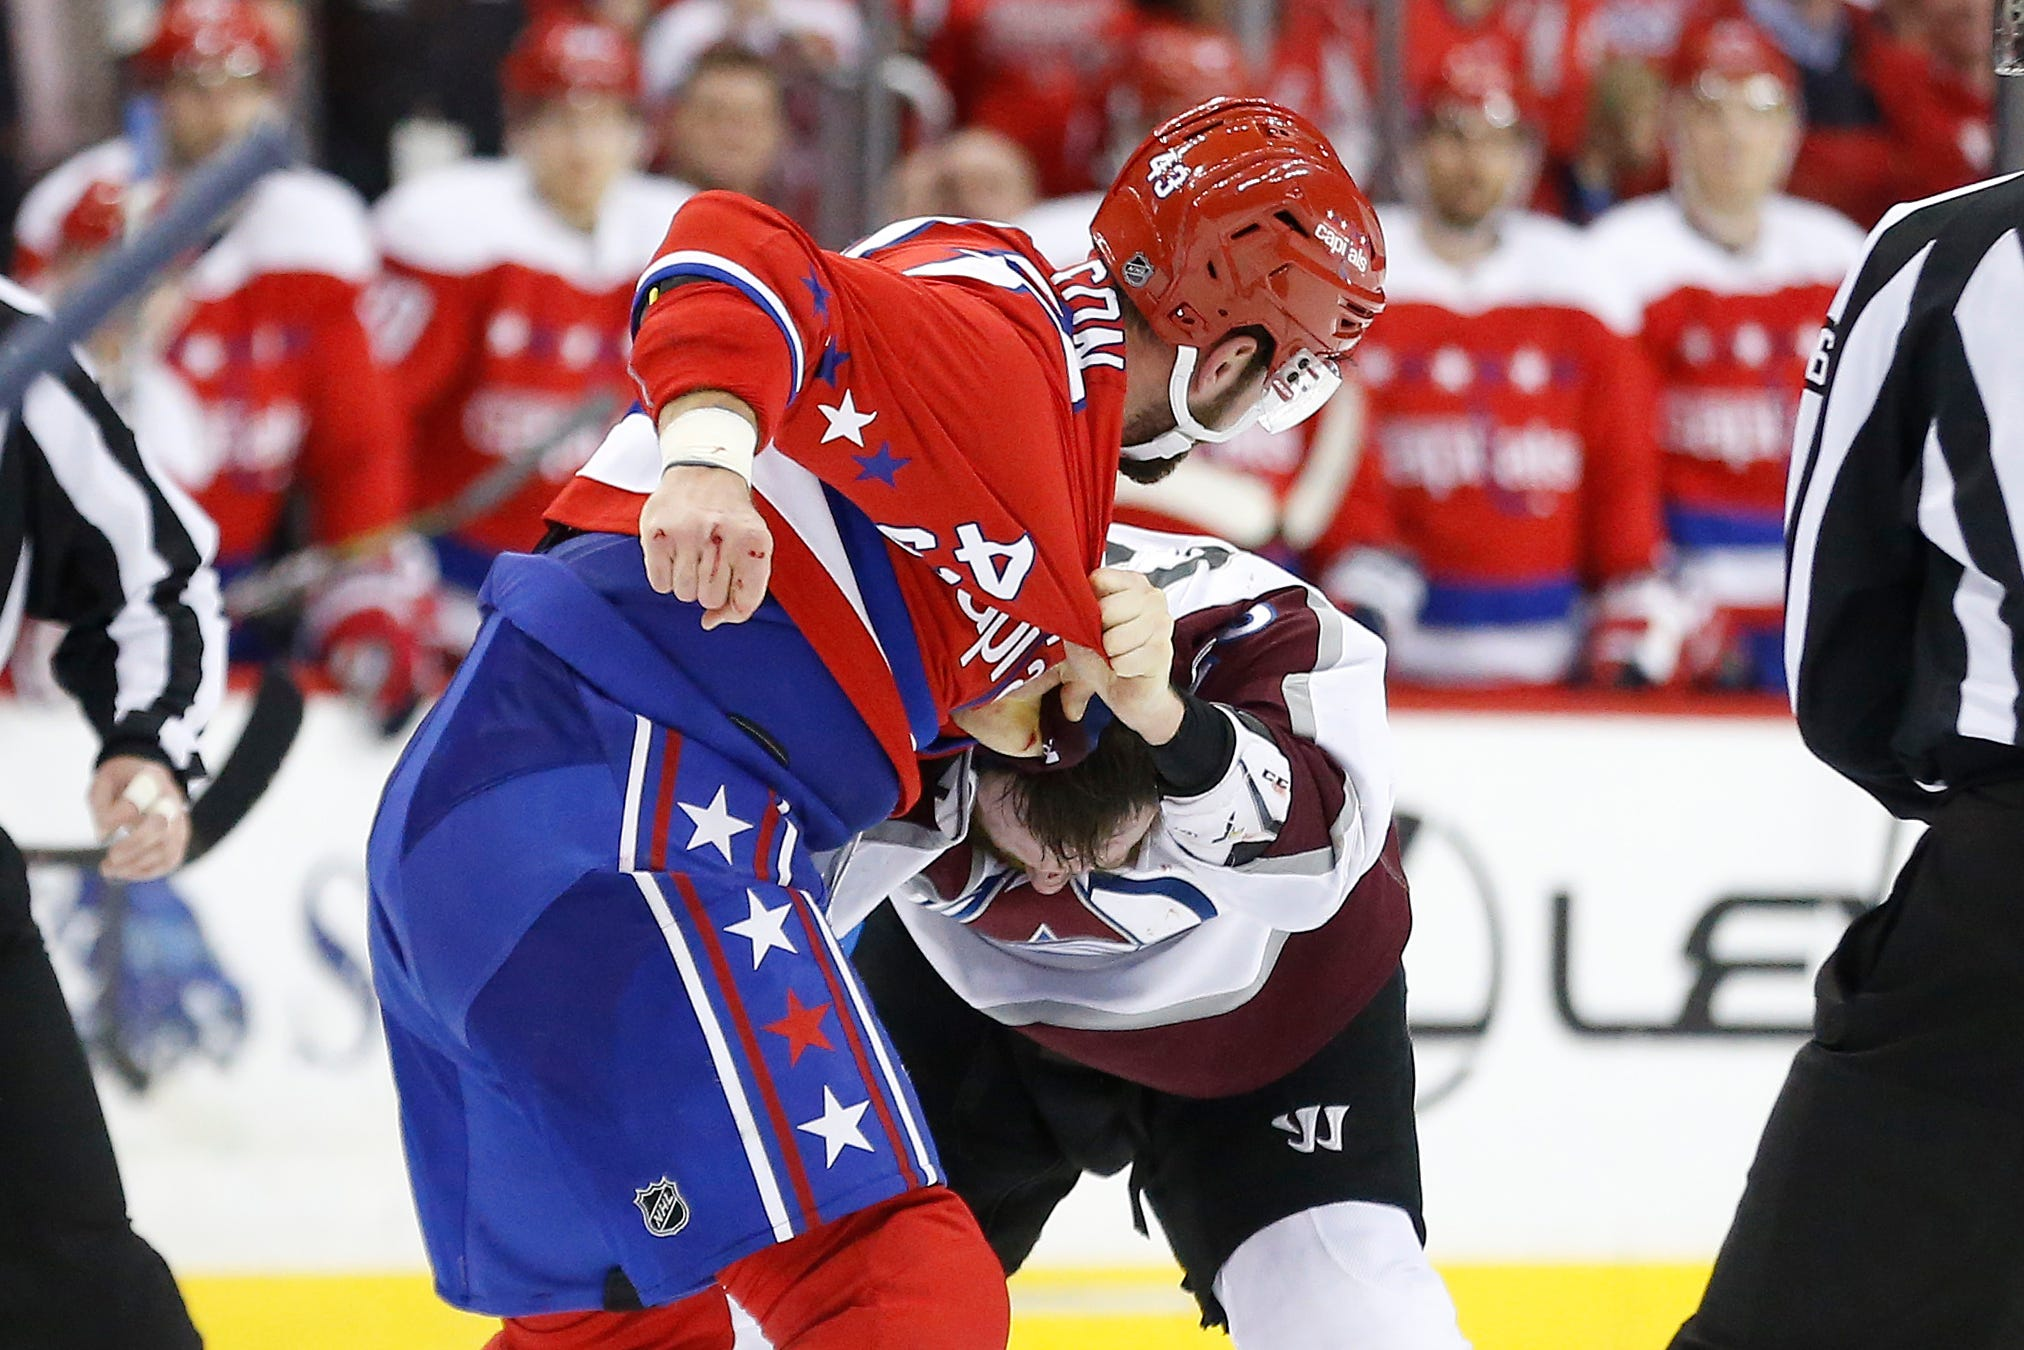 Capitals' Tom Wilson destroys Avalanche's Ian Cole in bloody fight after questionable hit